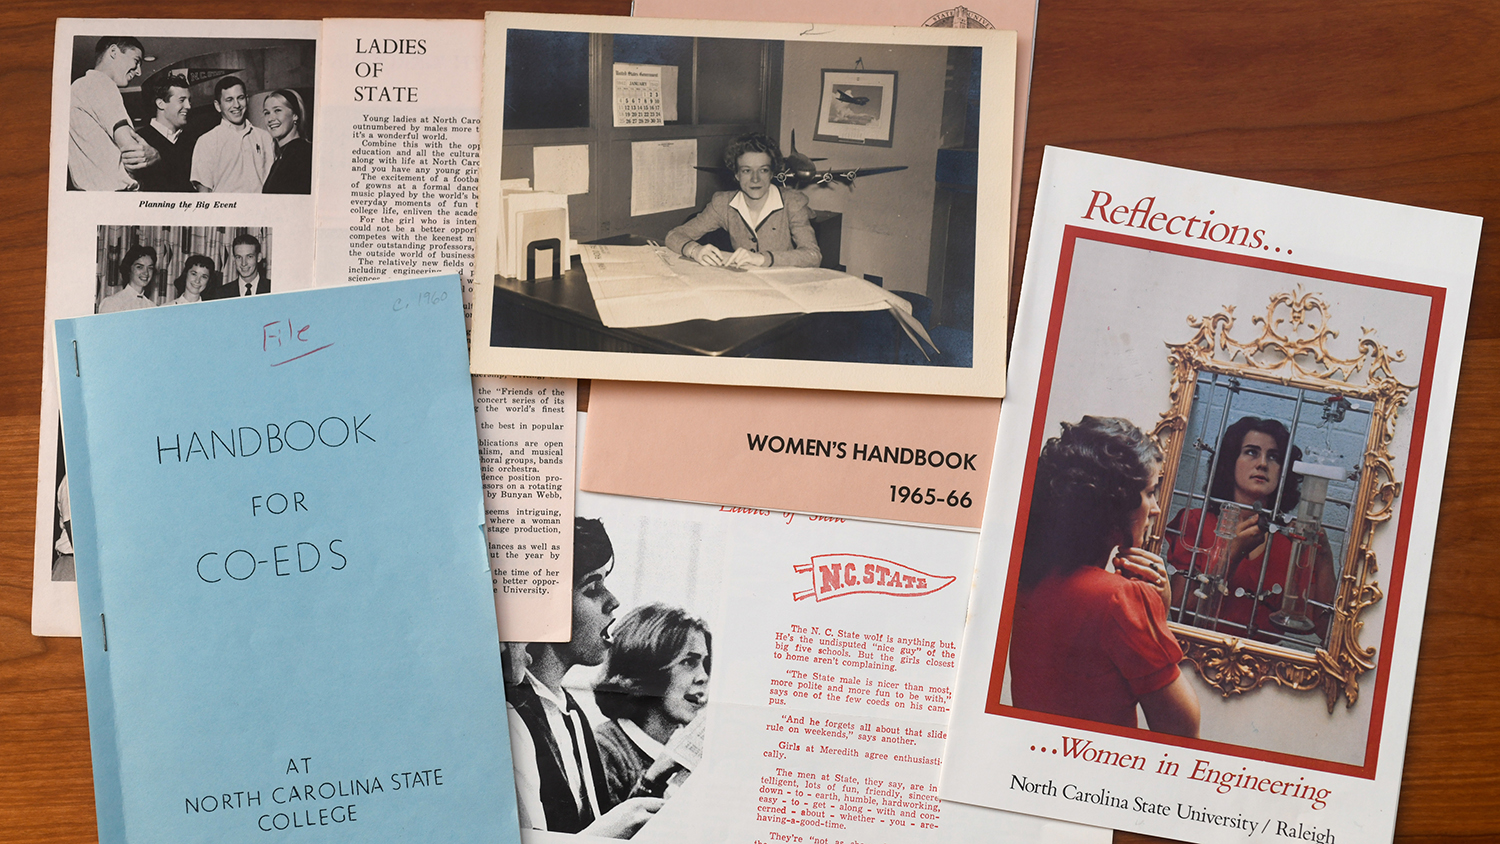 A collection of archival materials related to women's history at NC State.